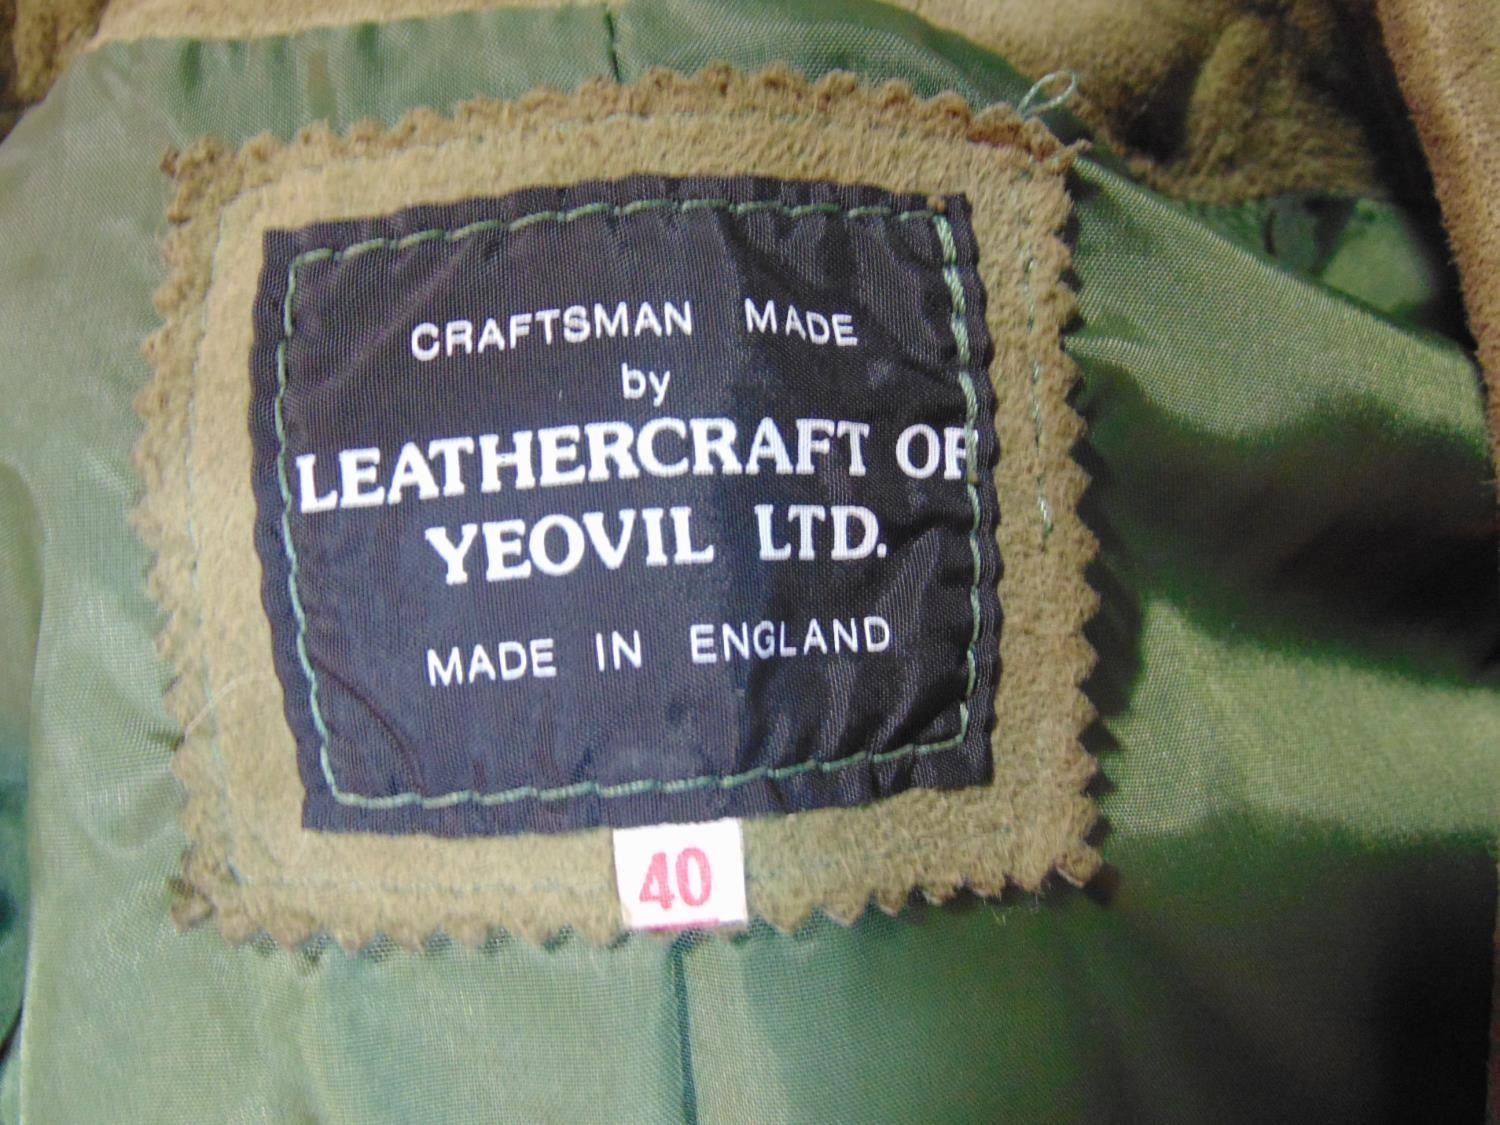 2 vintage ladies jackets including a short jacket by Cousins of Cheltenham in green woollen tweed - Image 6 of 6